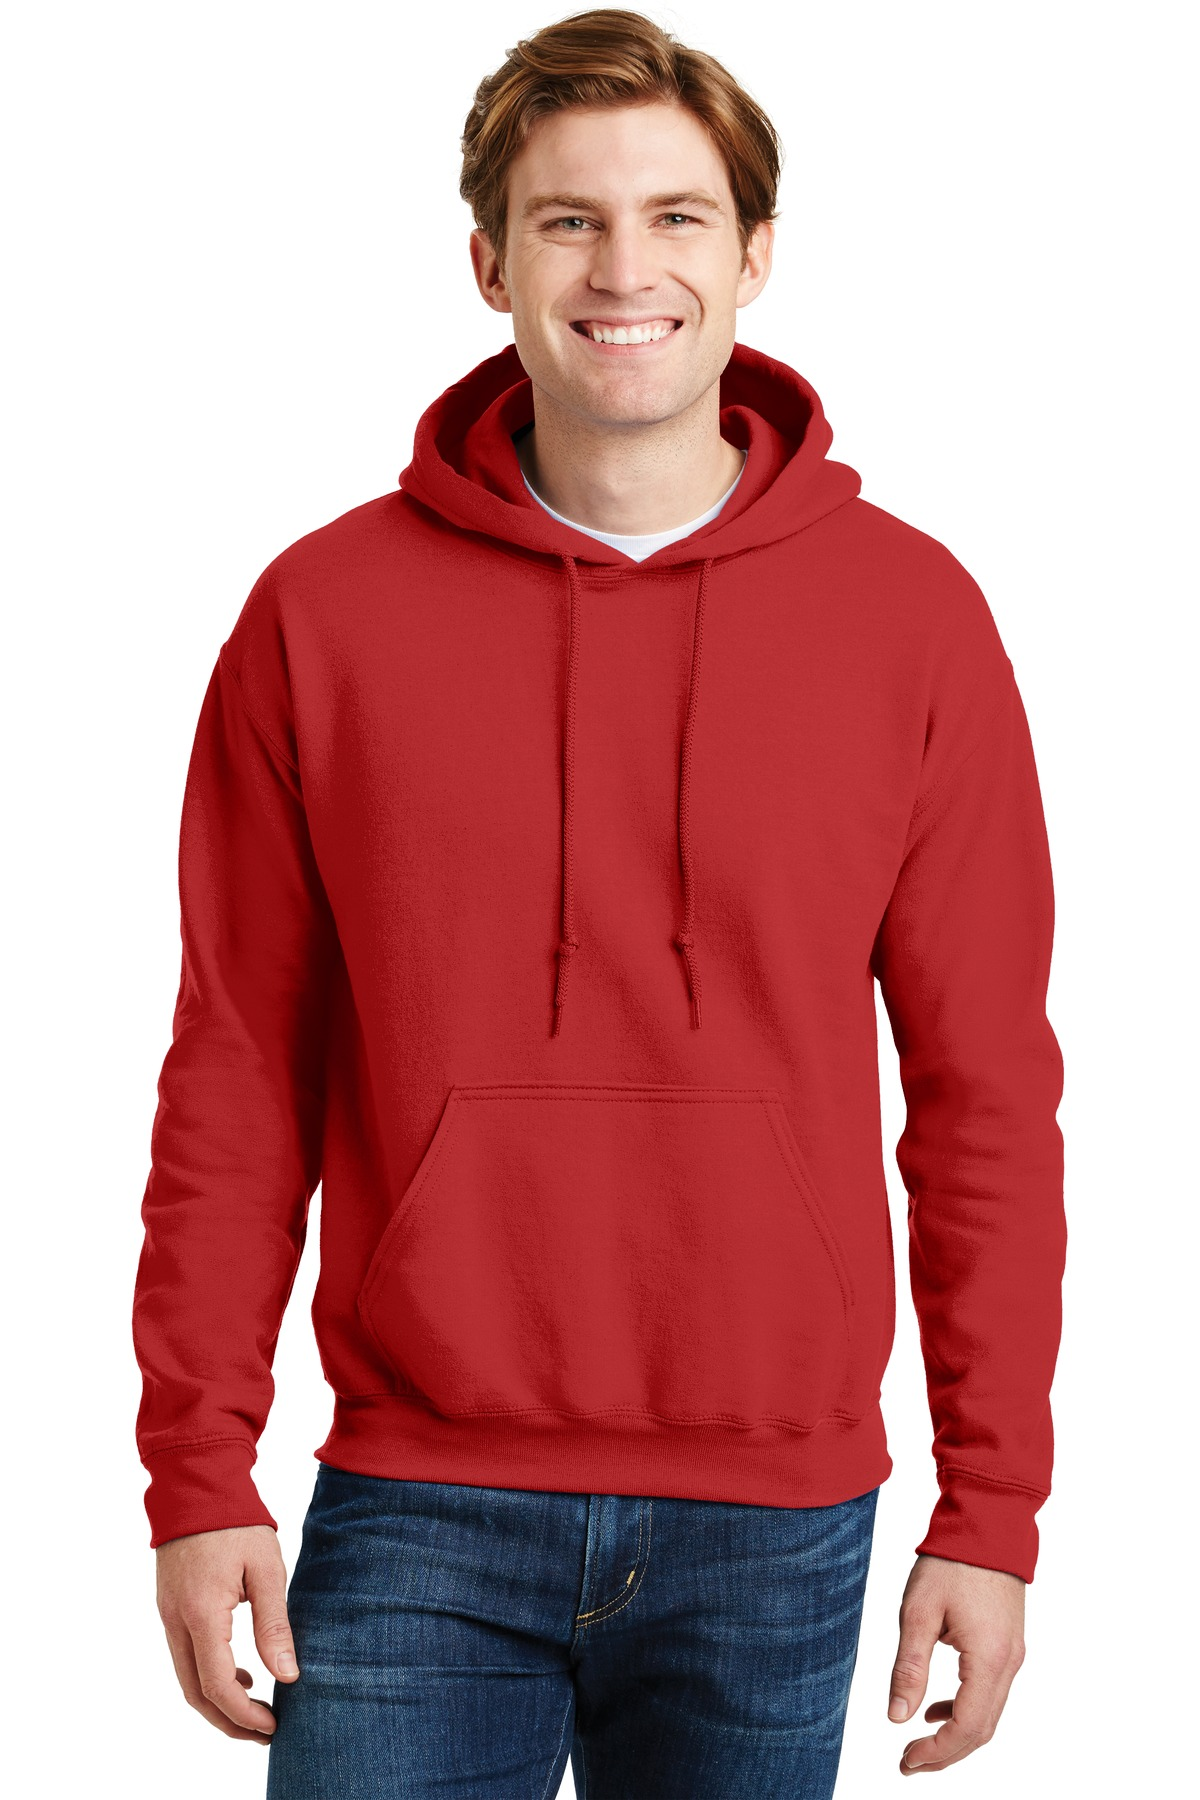 Gildan ®  - DryBlend ®  Pullover Hooded Sweatshirt.  12500 - Red